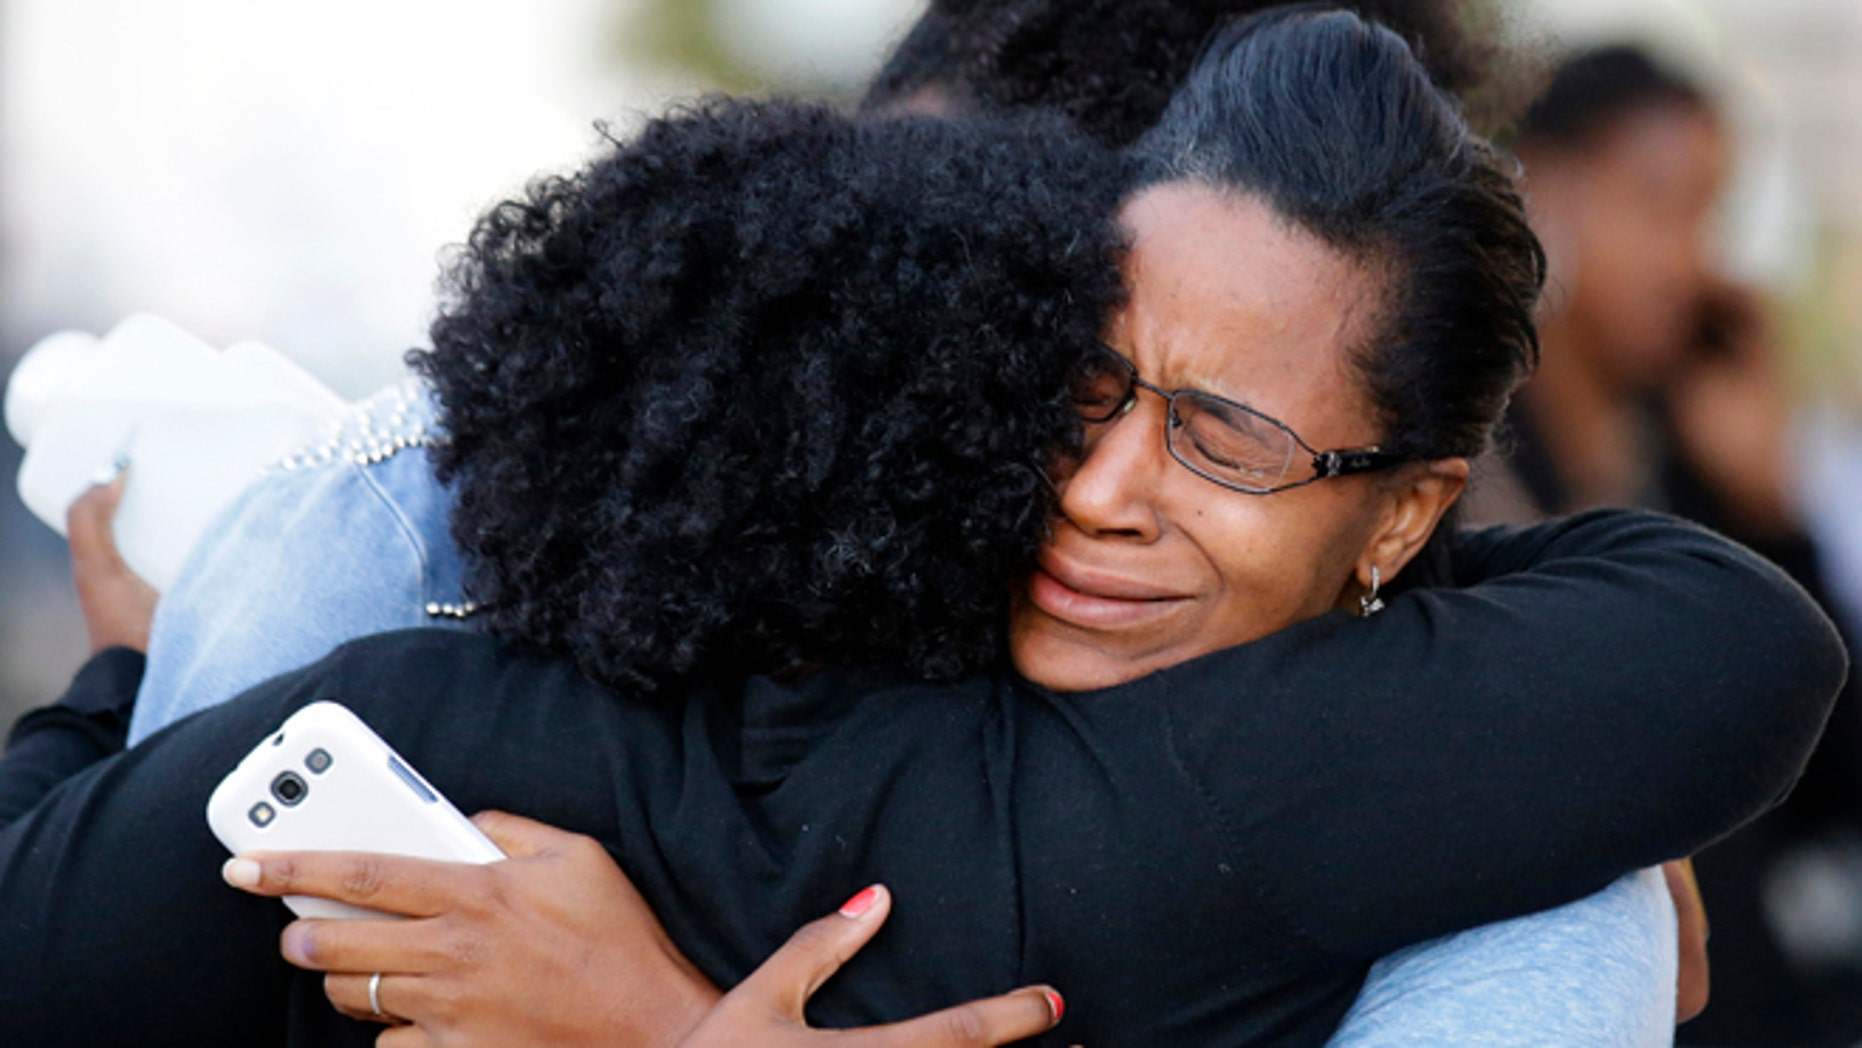 Sept. 16, 2013: Three women embrace near Nationals Park where family members waited to greet loved ones that were at the Washington Navy Yard in Washington. At least one gunman launched an attack inside the Washington Navy Yard, spraying gunfire on office workers in the cafeteria and in the hallways at the heavily secured military installation in the heart of the nation's capital, authorities said. (AP/Alex Brandon)